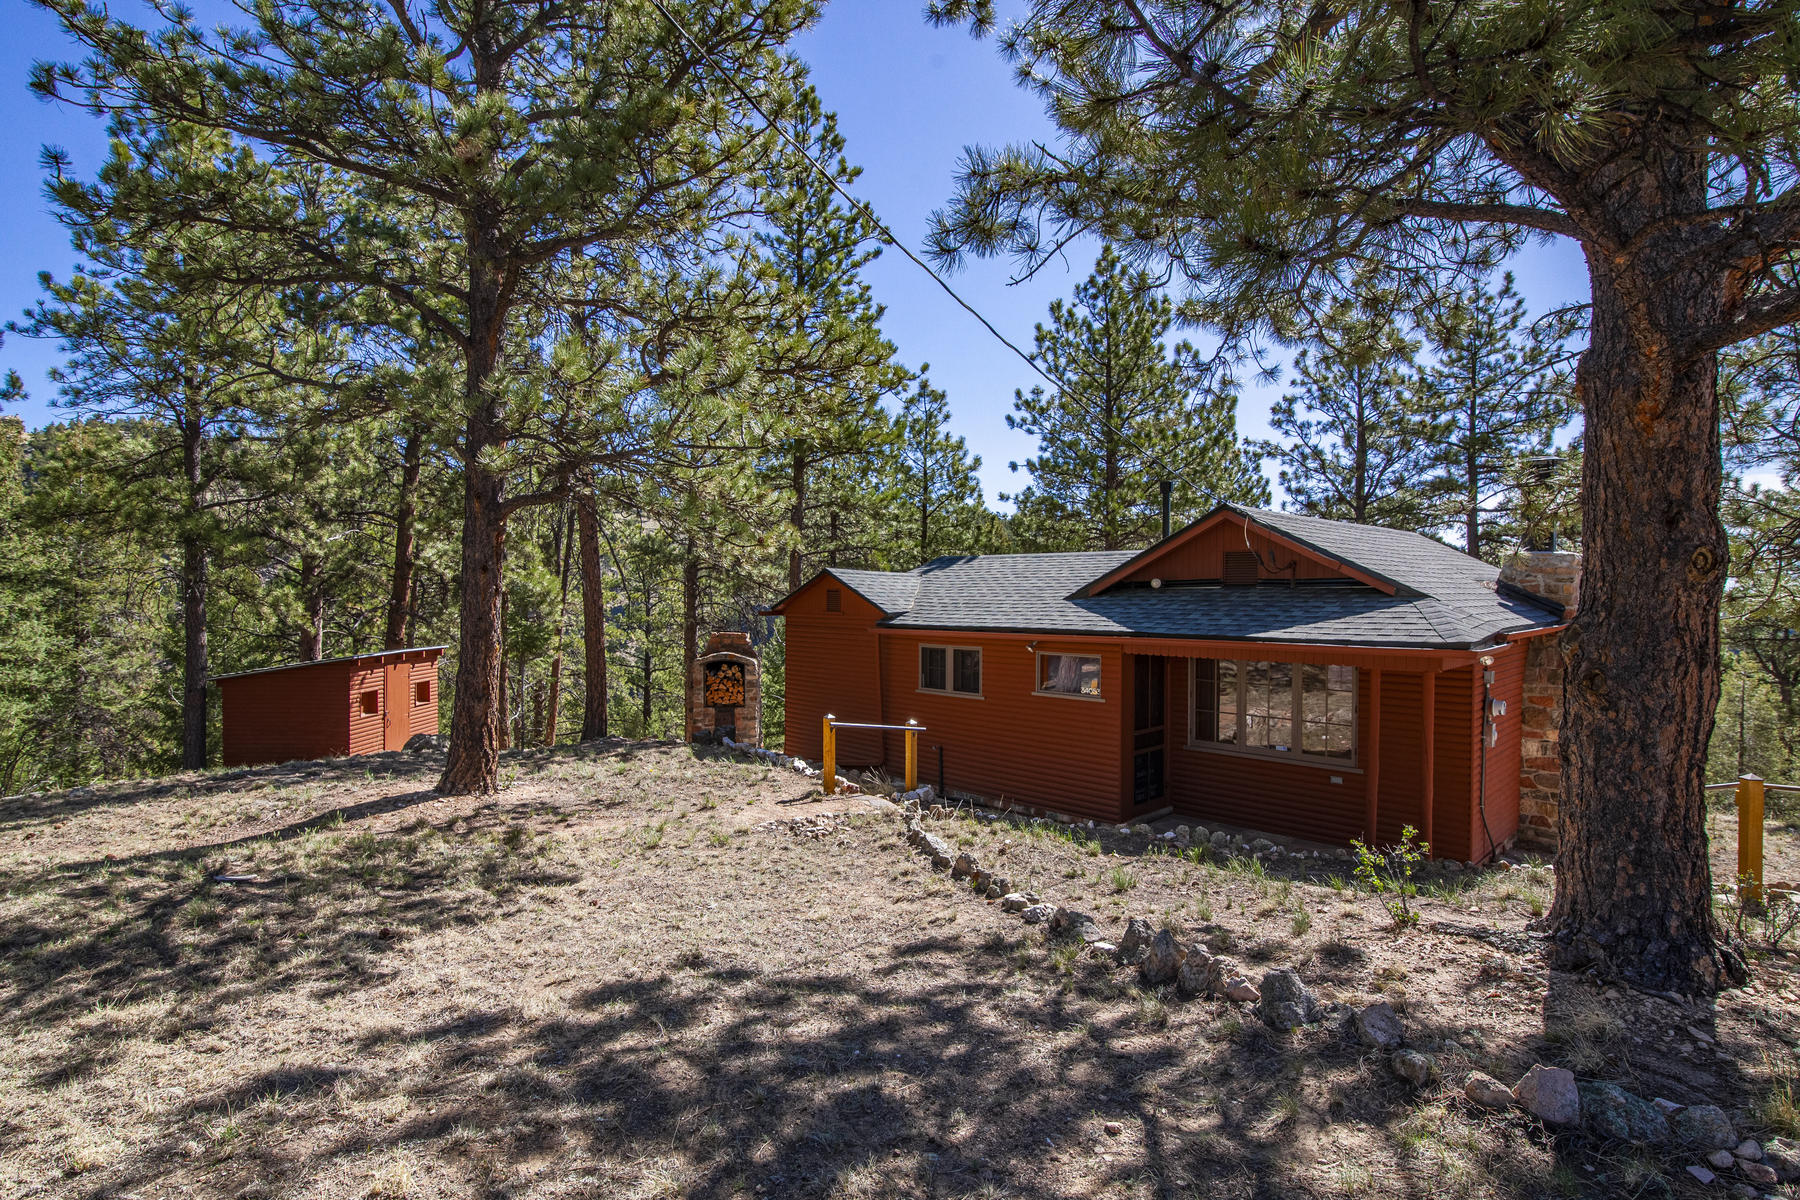 Single Family Homes for Active at Charming Mountain Cabin! 34053 Eagle Ln Pine, Colorado 80470 United States